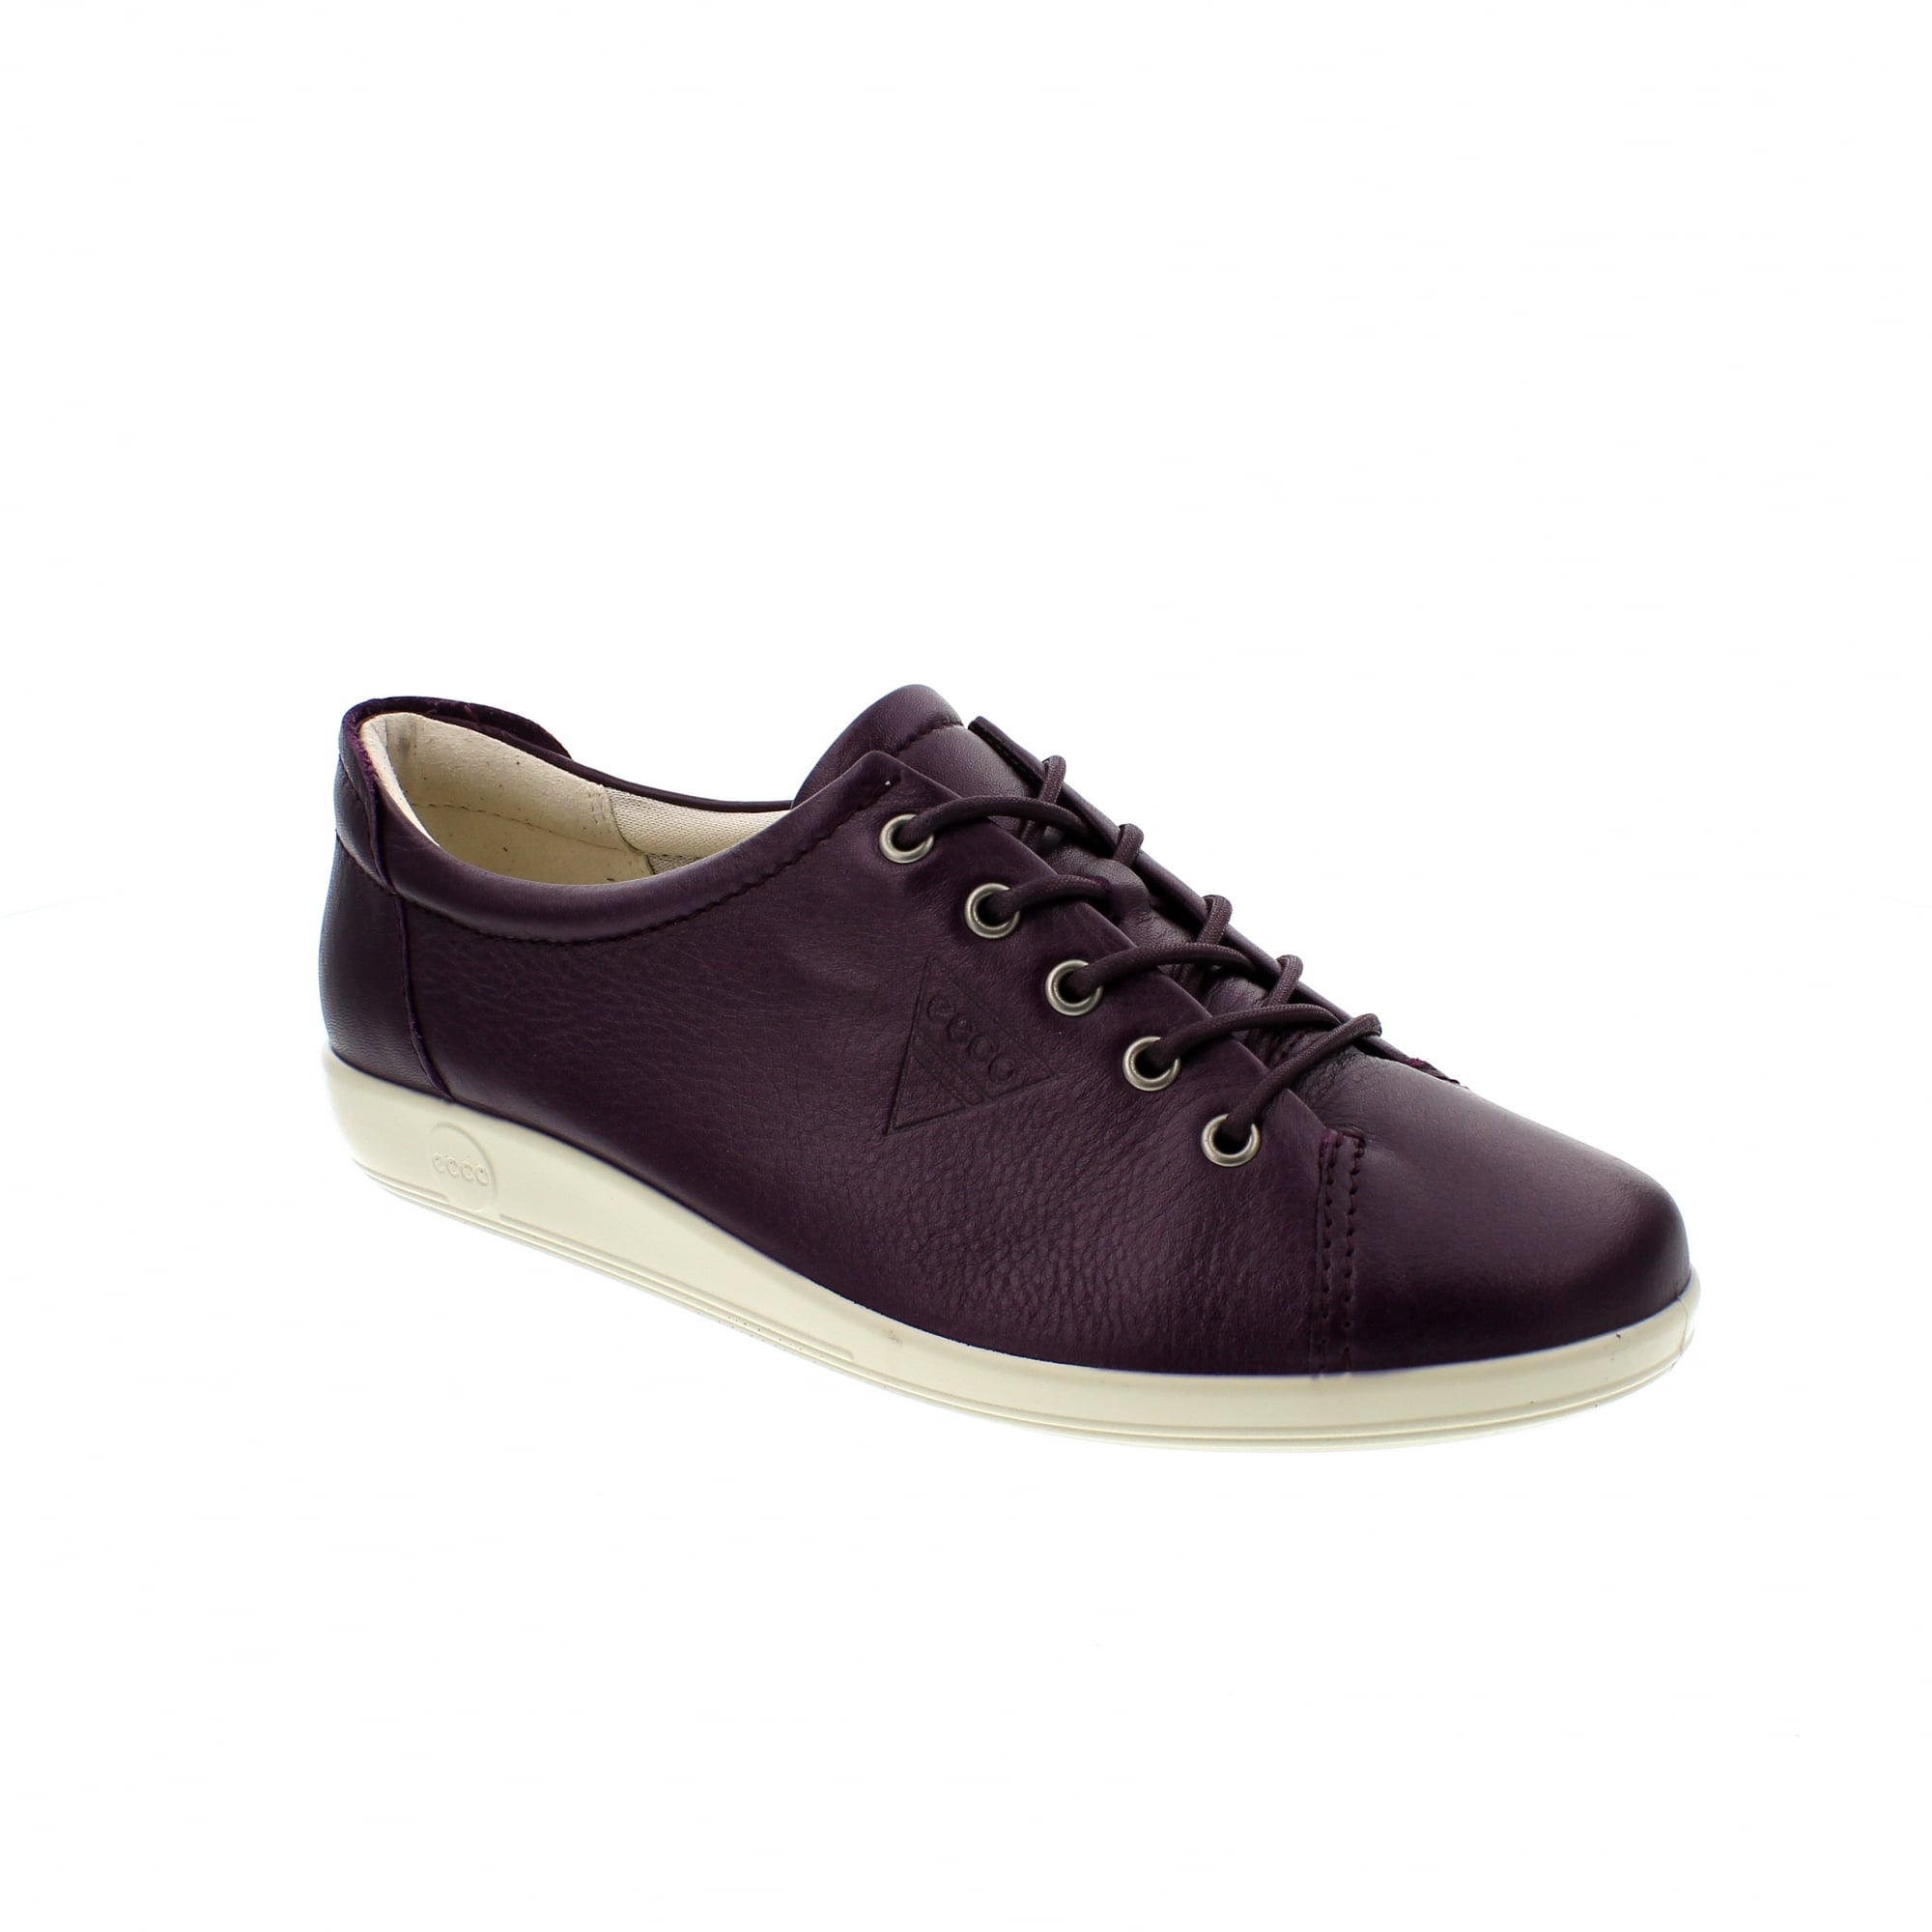 Ecco Soft 2.0 | 206503-01276 - Womens